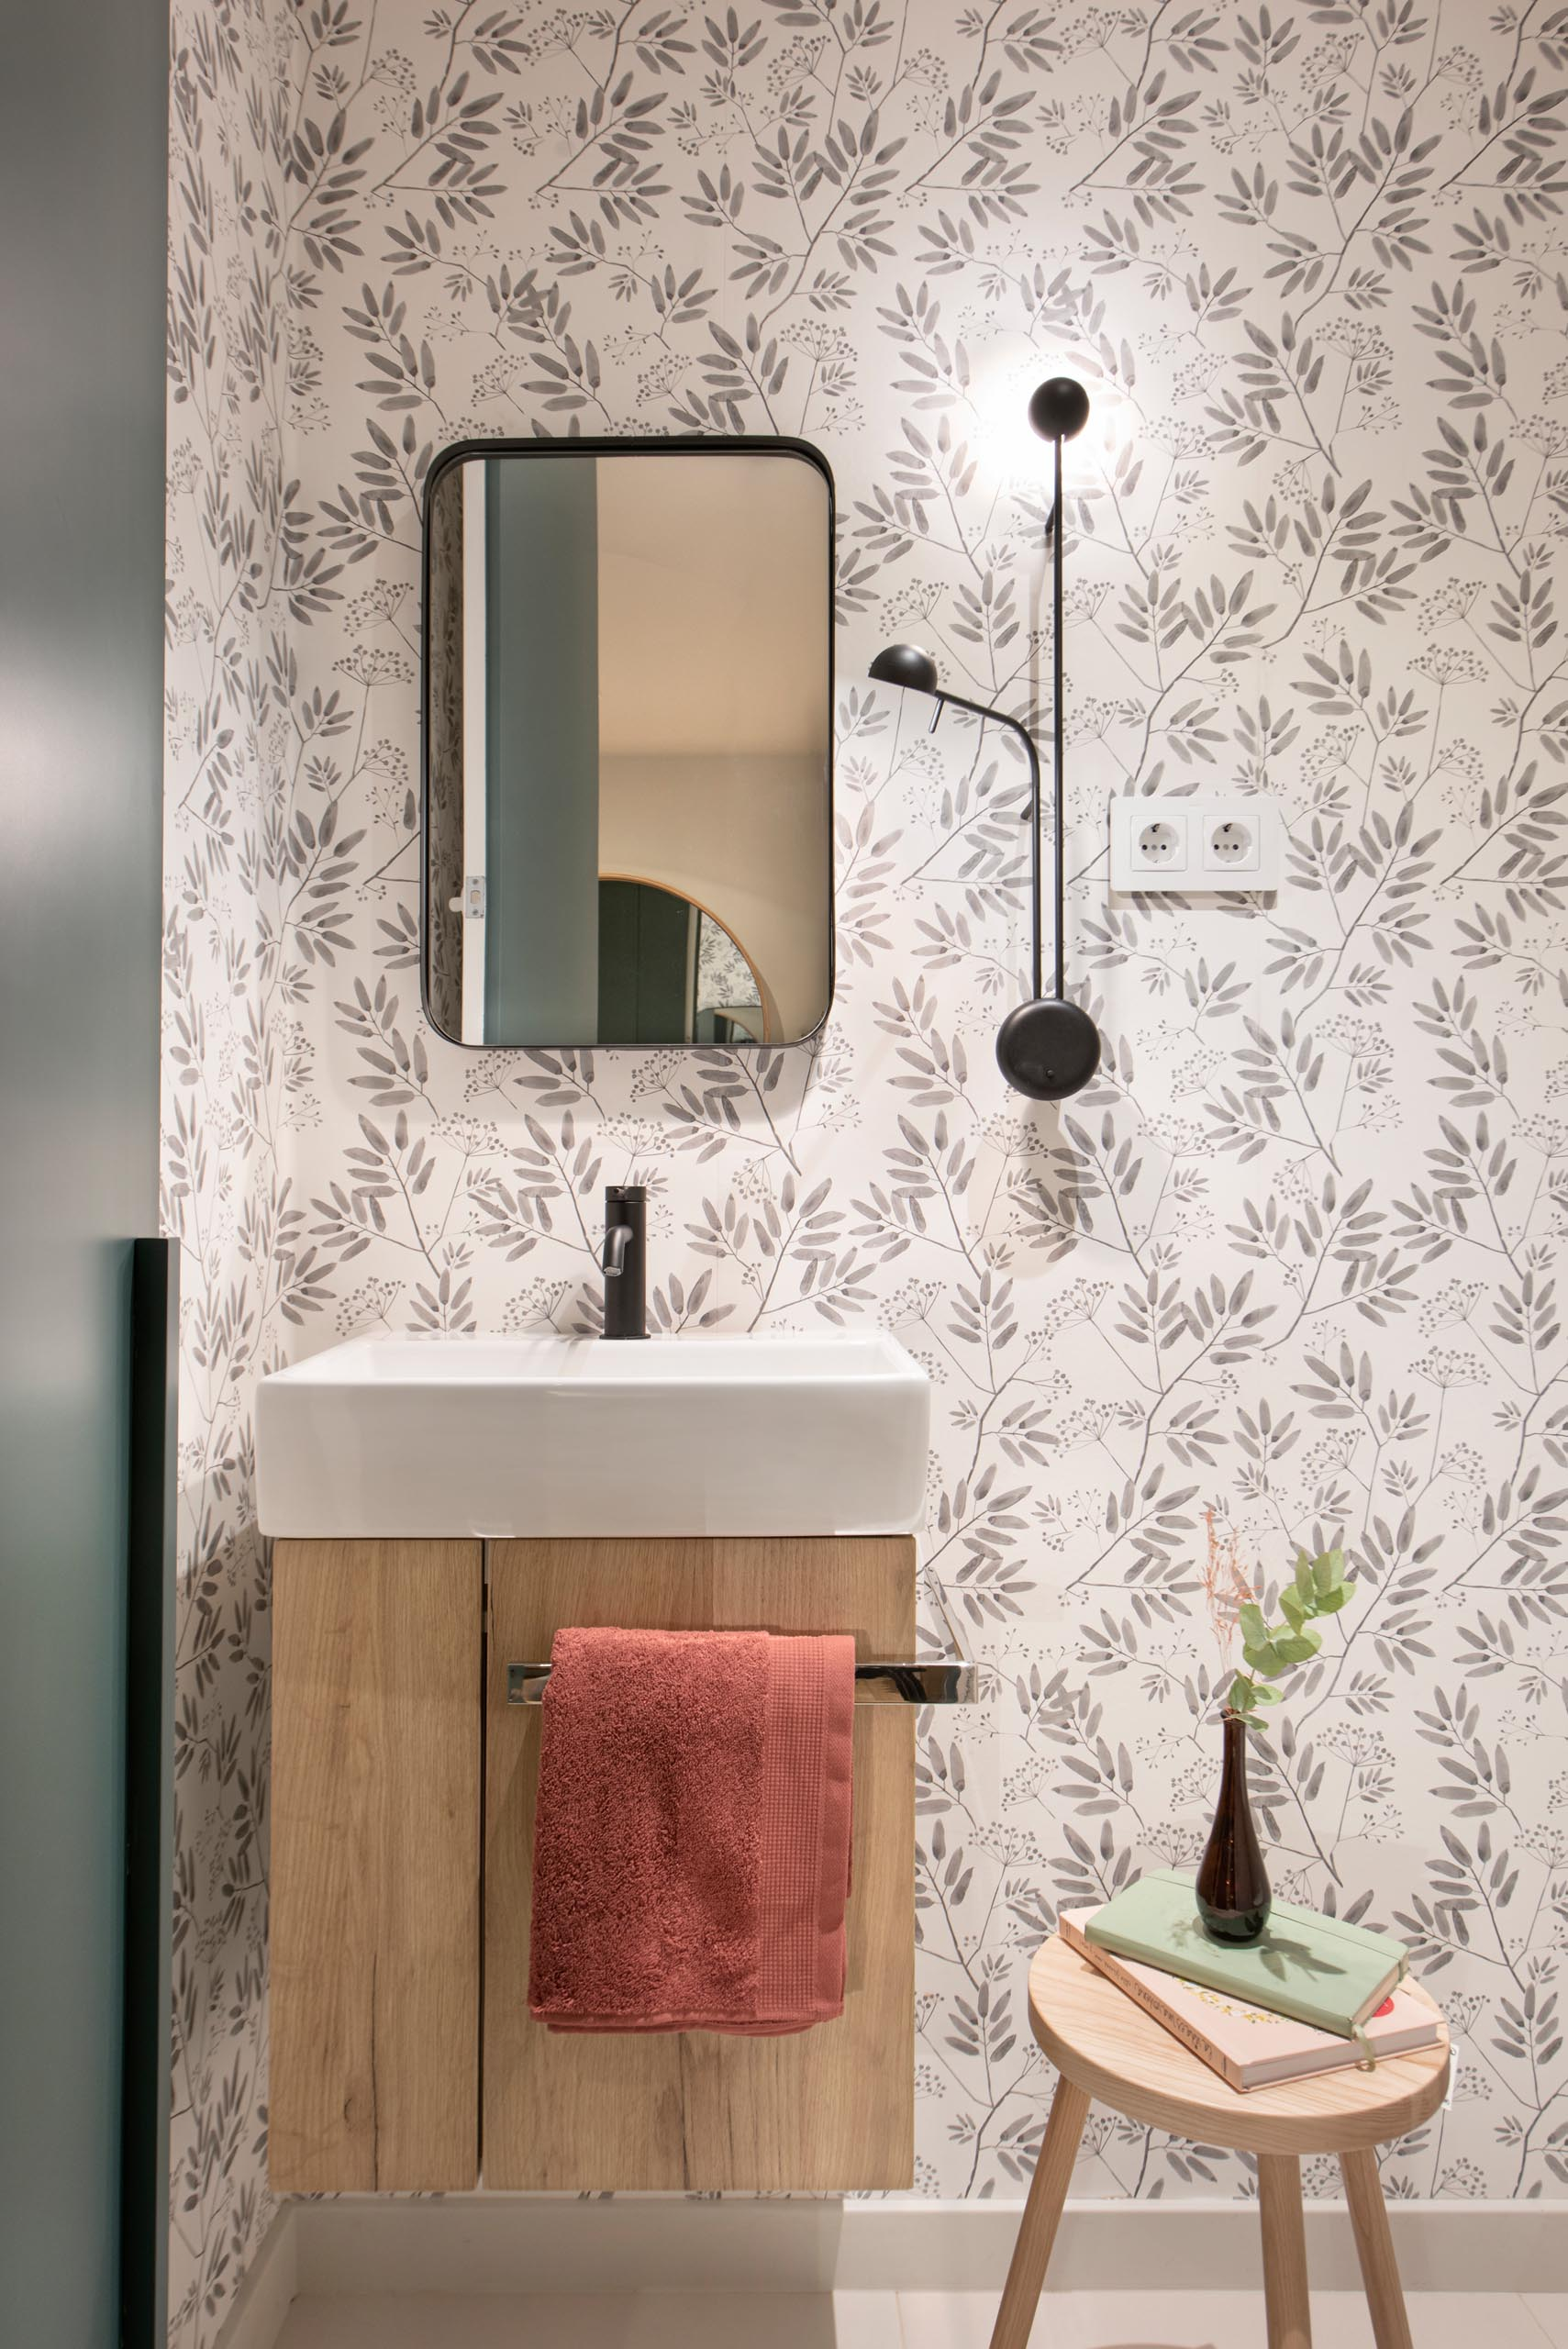 Floral pattern wallpaper, high contrast accessories and taps, and a wall lamp by Ichiro Iwasaki for Vibia, gives this powder room a unique appearance.